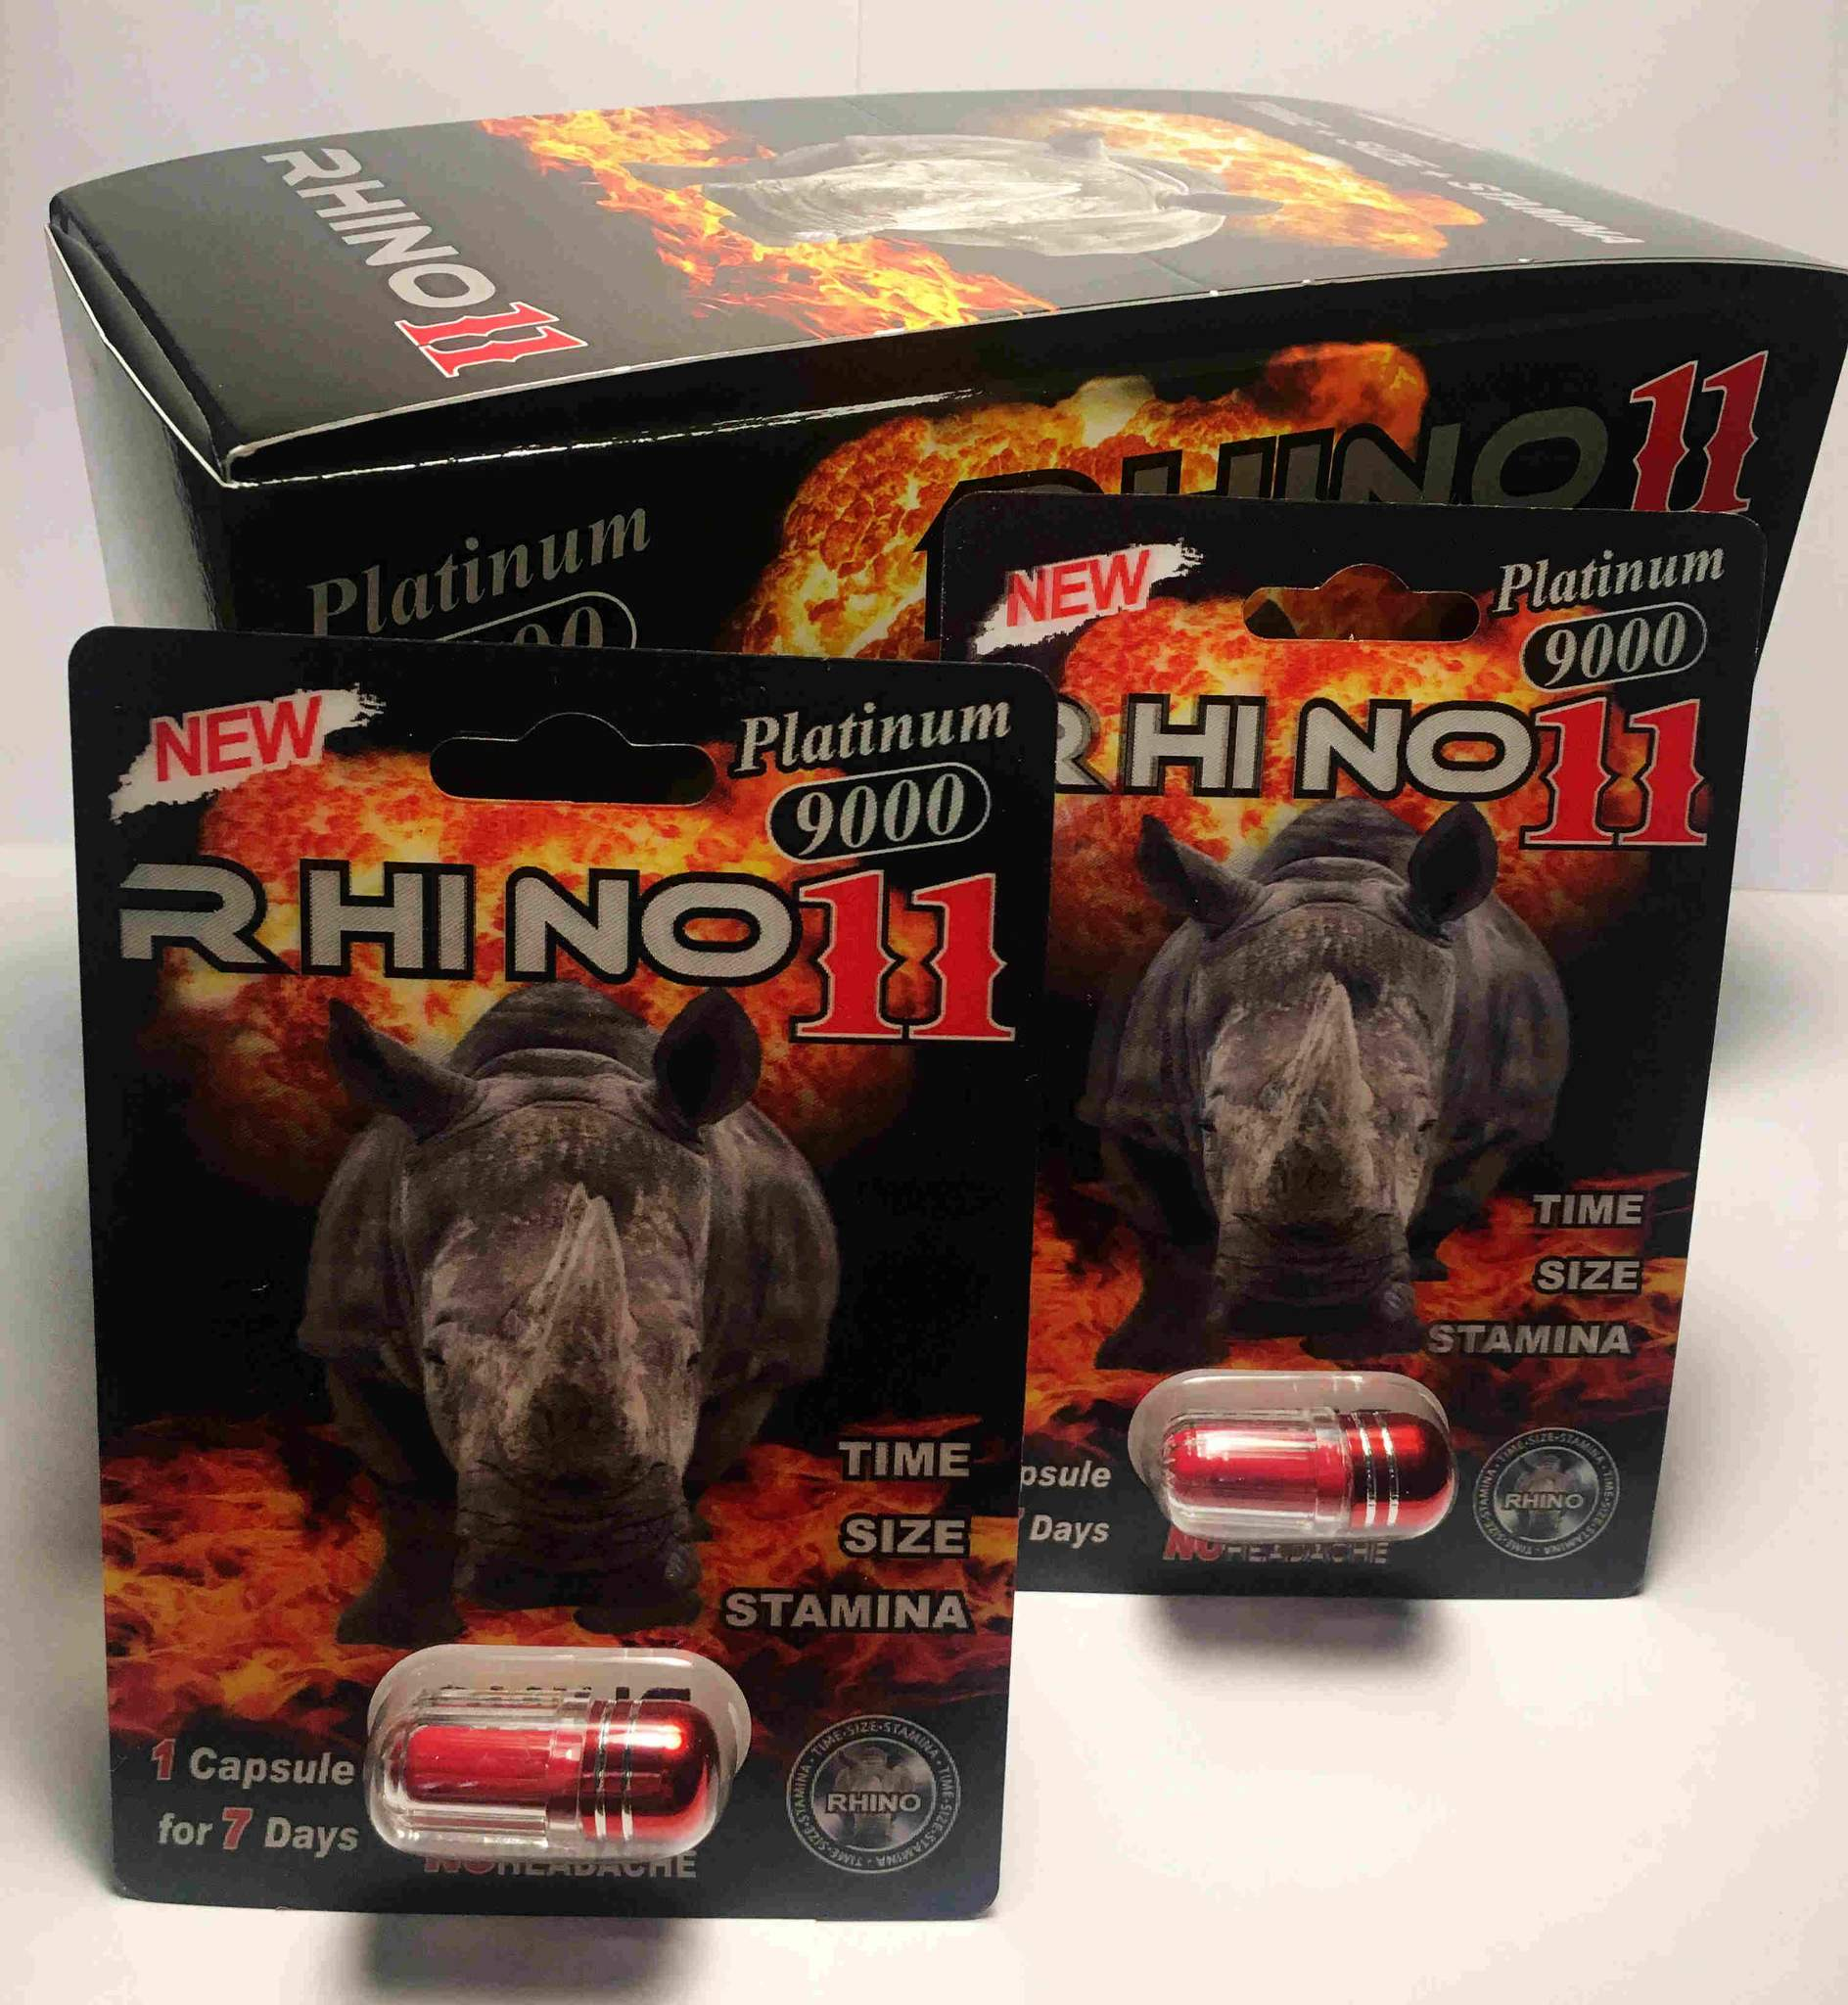 Rhino 11 Platinum 9000 Male Sexual Performance Enhancer (Pack of 1)